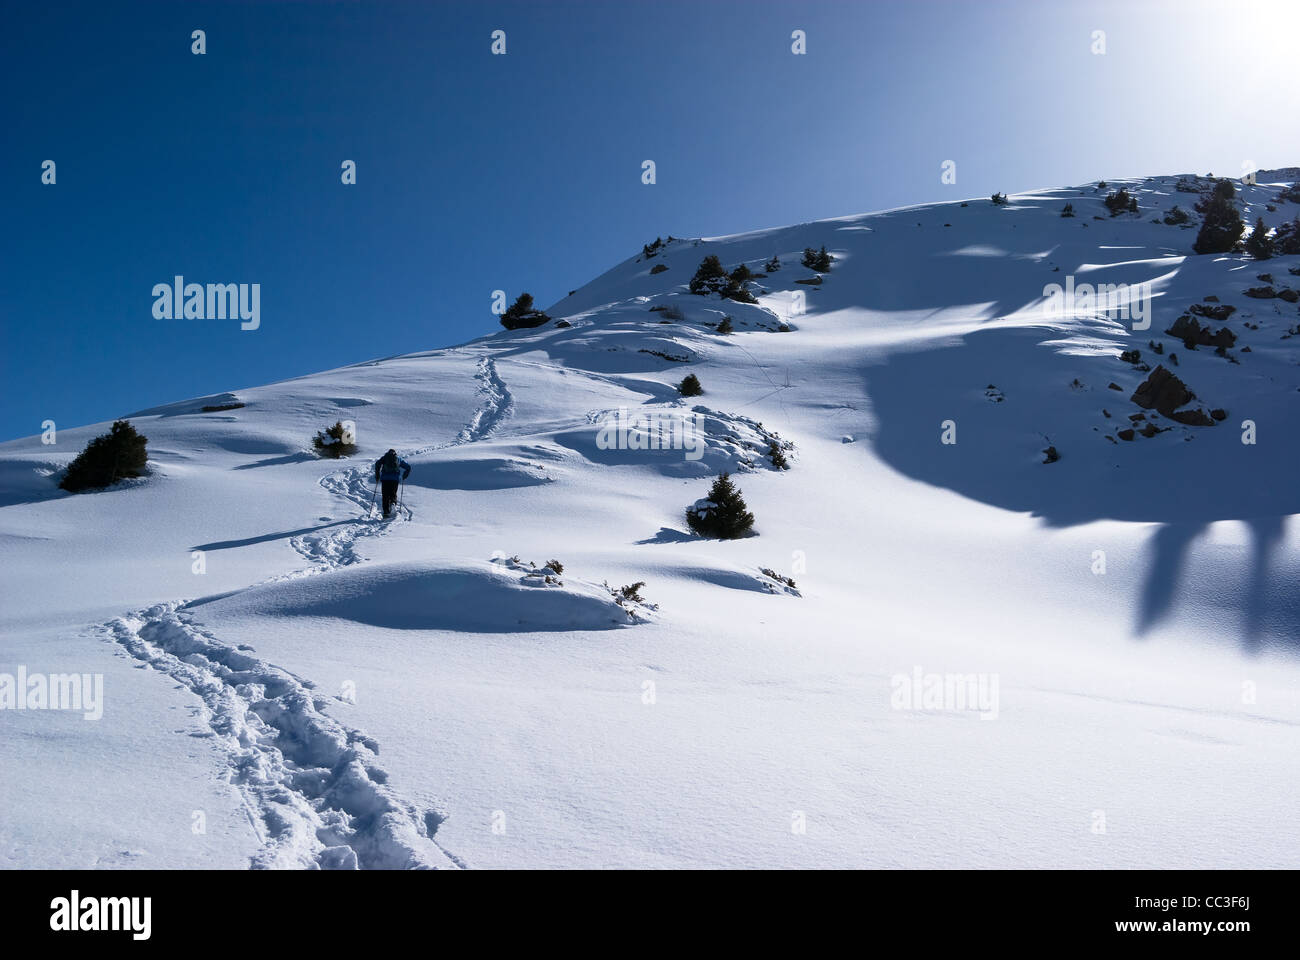 Backpacker in winter mountains - Stock Image